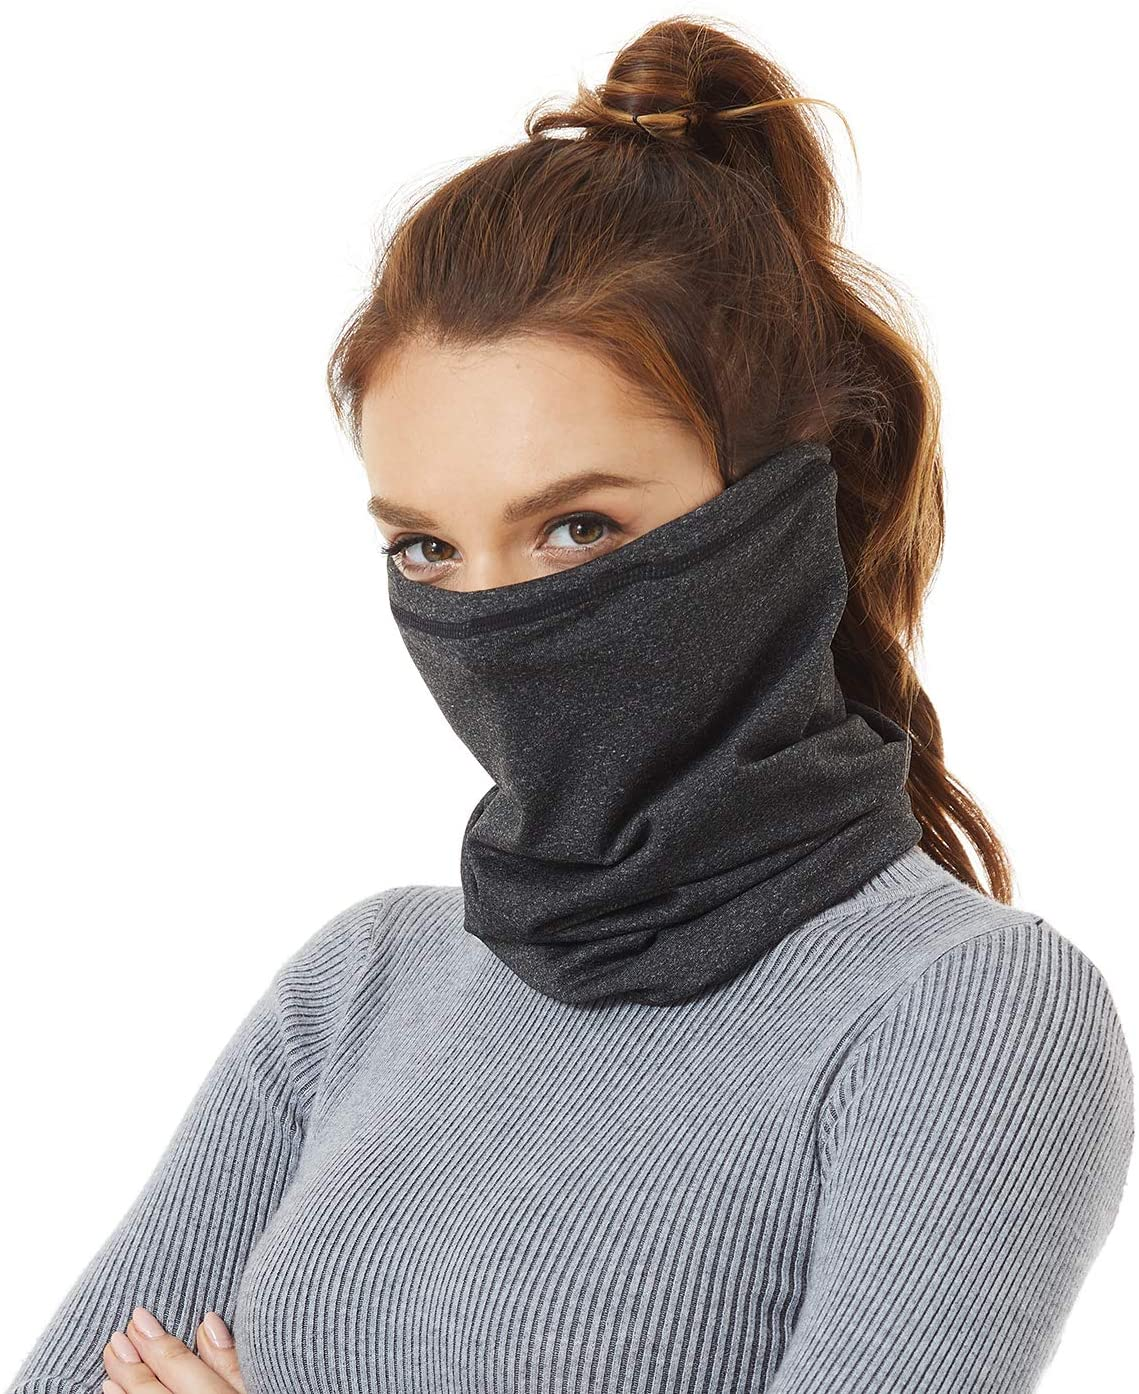 Winter Neck Gaiter Warmer, Fleece Adjustable Elastic Closure Face Cover Mask for Women and Men, Suitable for Skiing Fishing Running Cycling Outdoor Recreation in Cold Weather